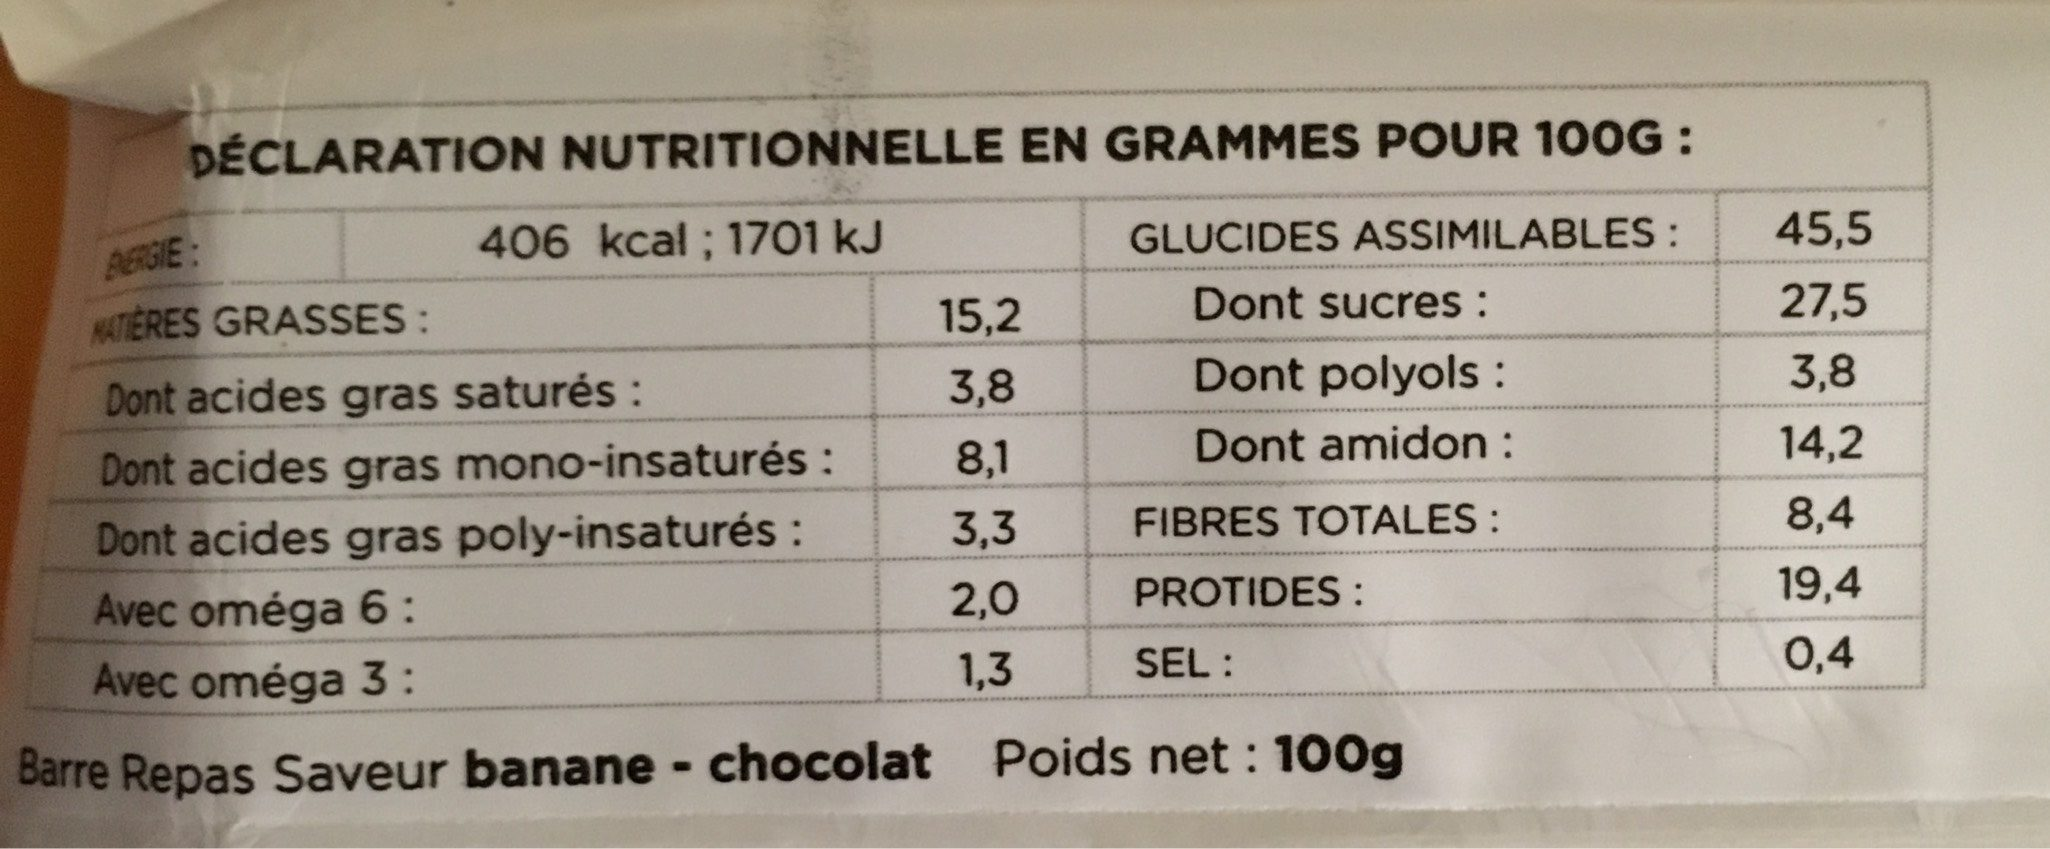 Feed barre banane chocolat - Informations nutritionnelles